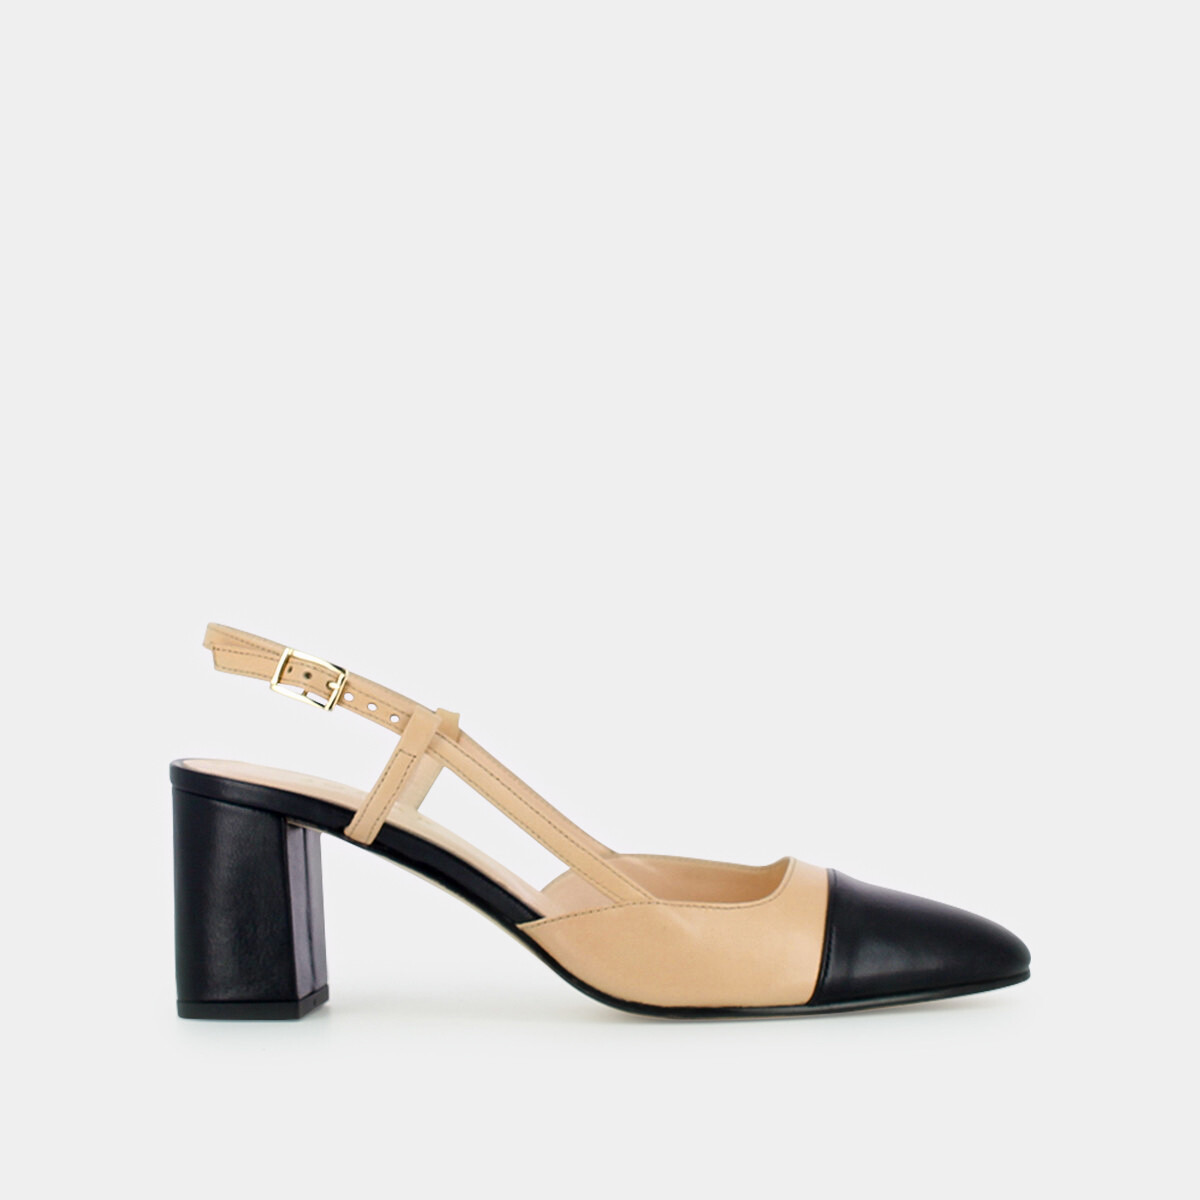 7f35f74f2bae7e Mary Janes with heel in black and beige leather beige/noir ...